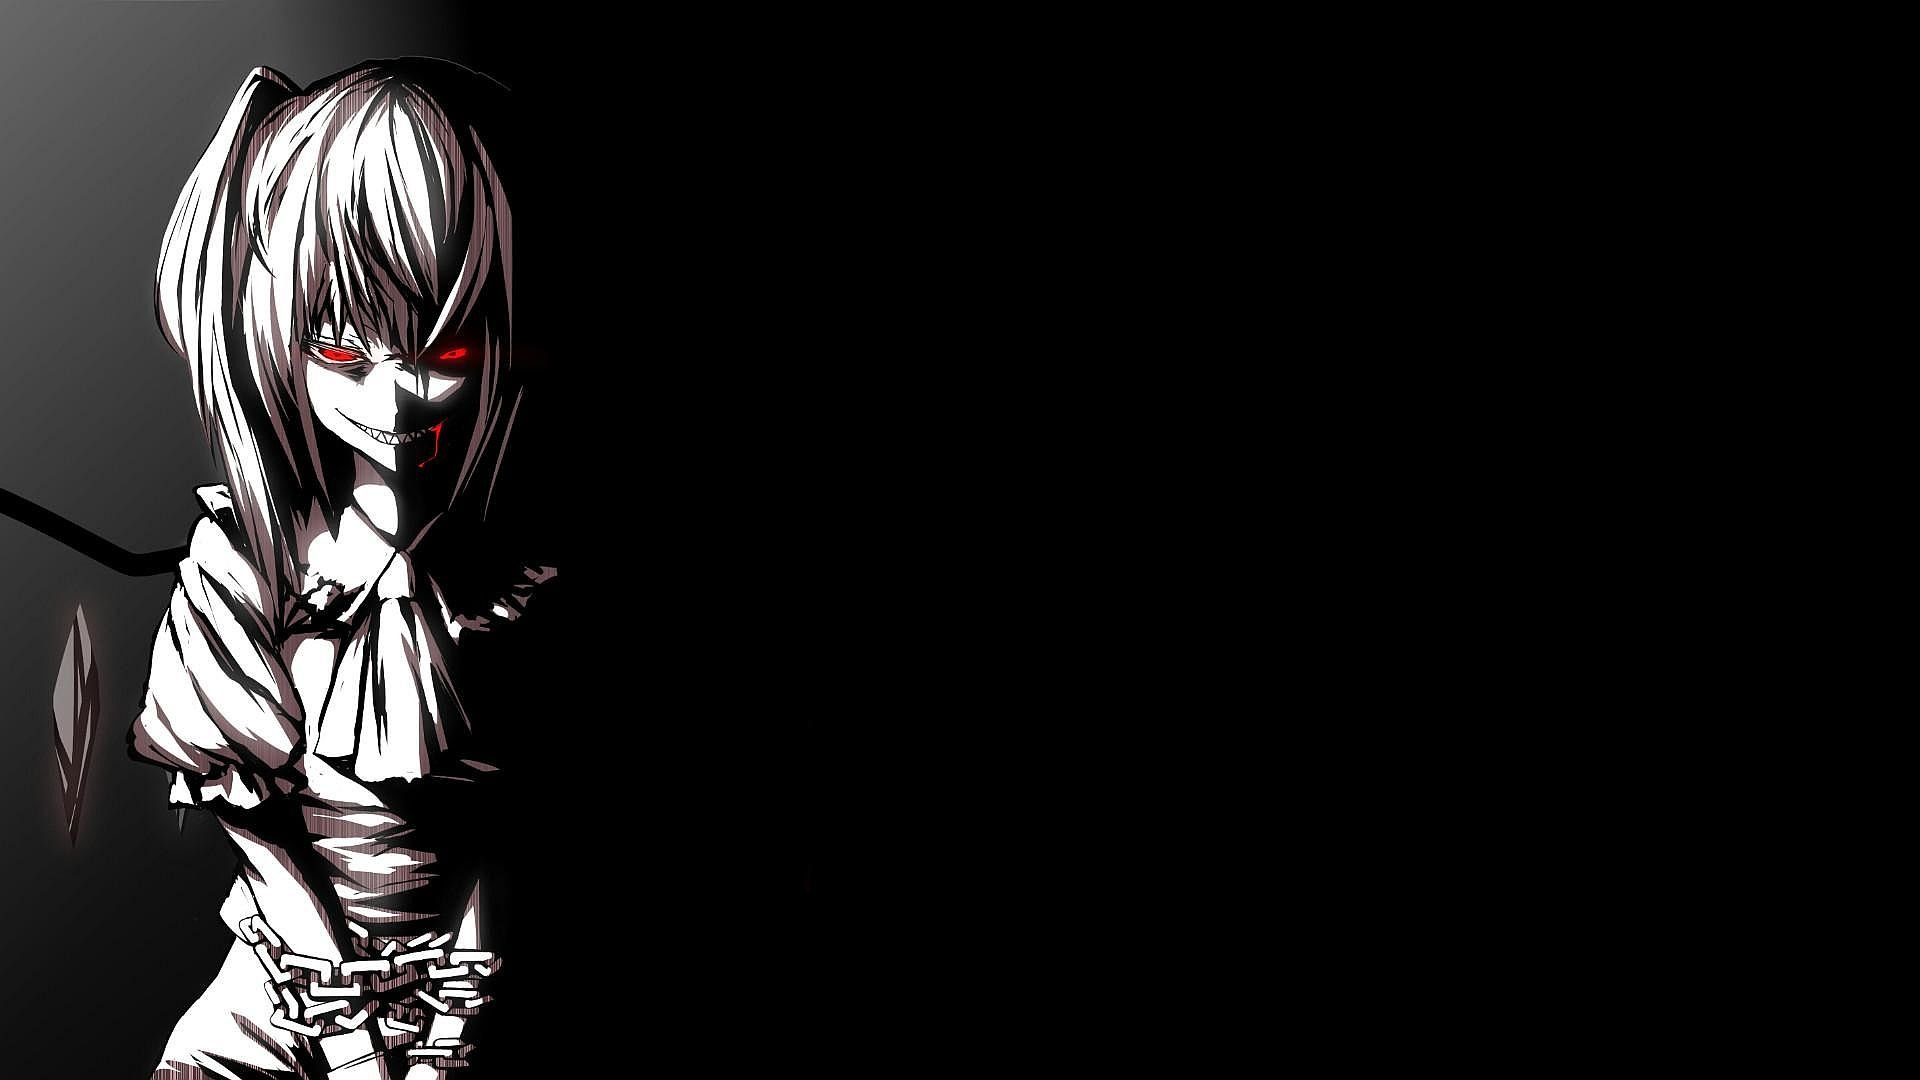 download dark anime backgrounds 17185 1920x1080 px high